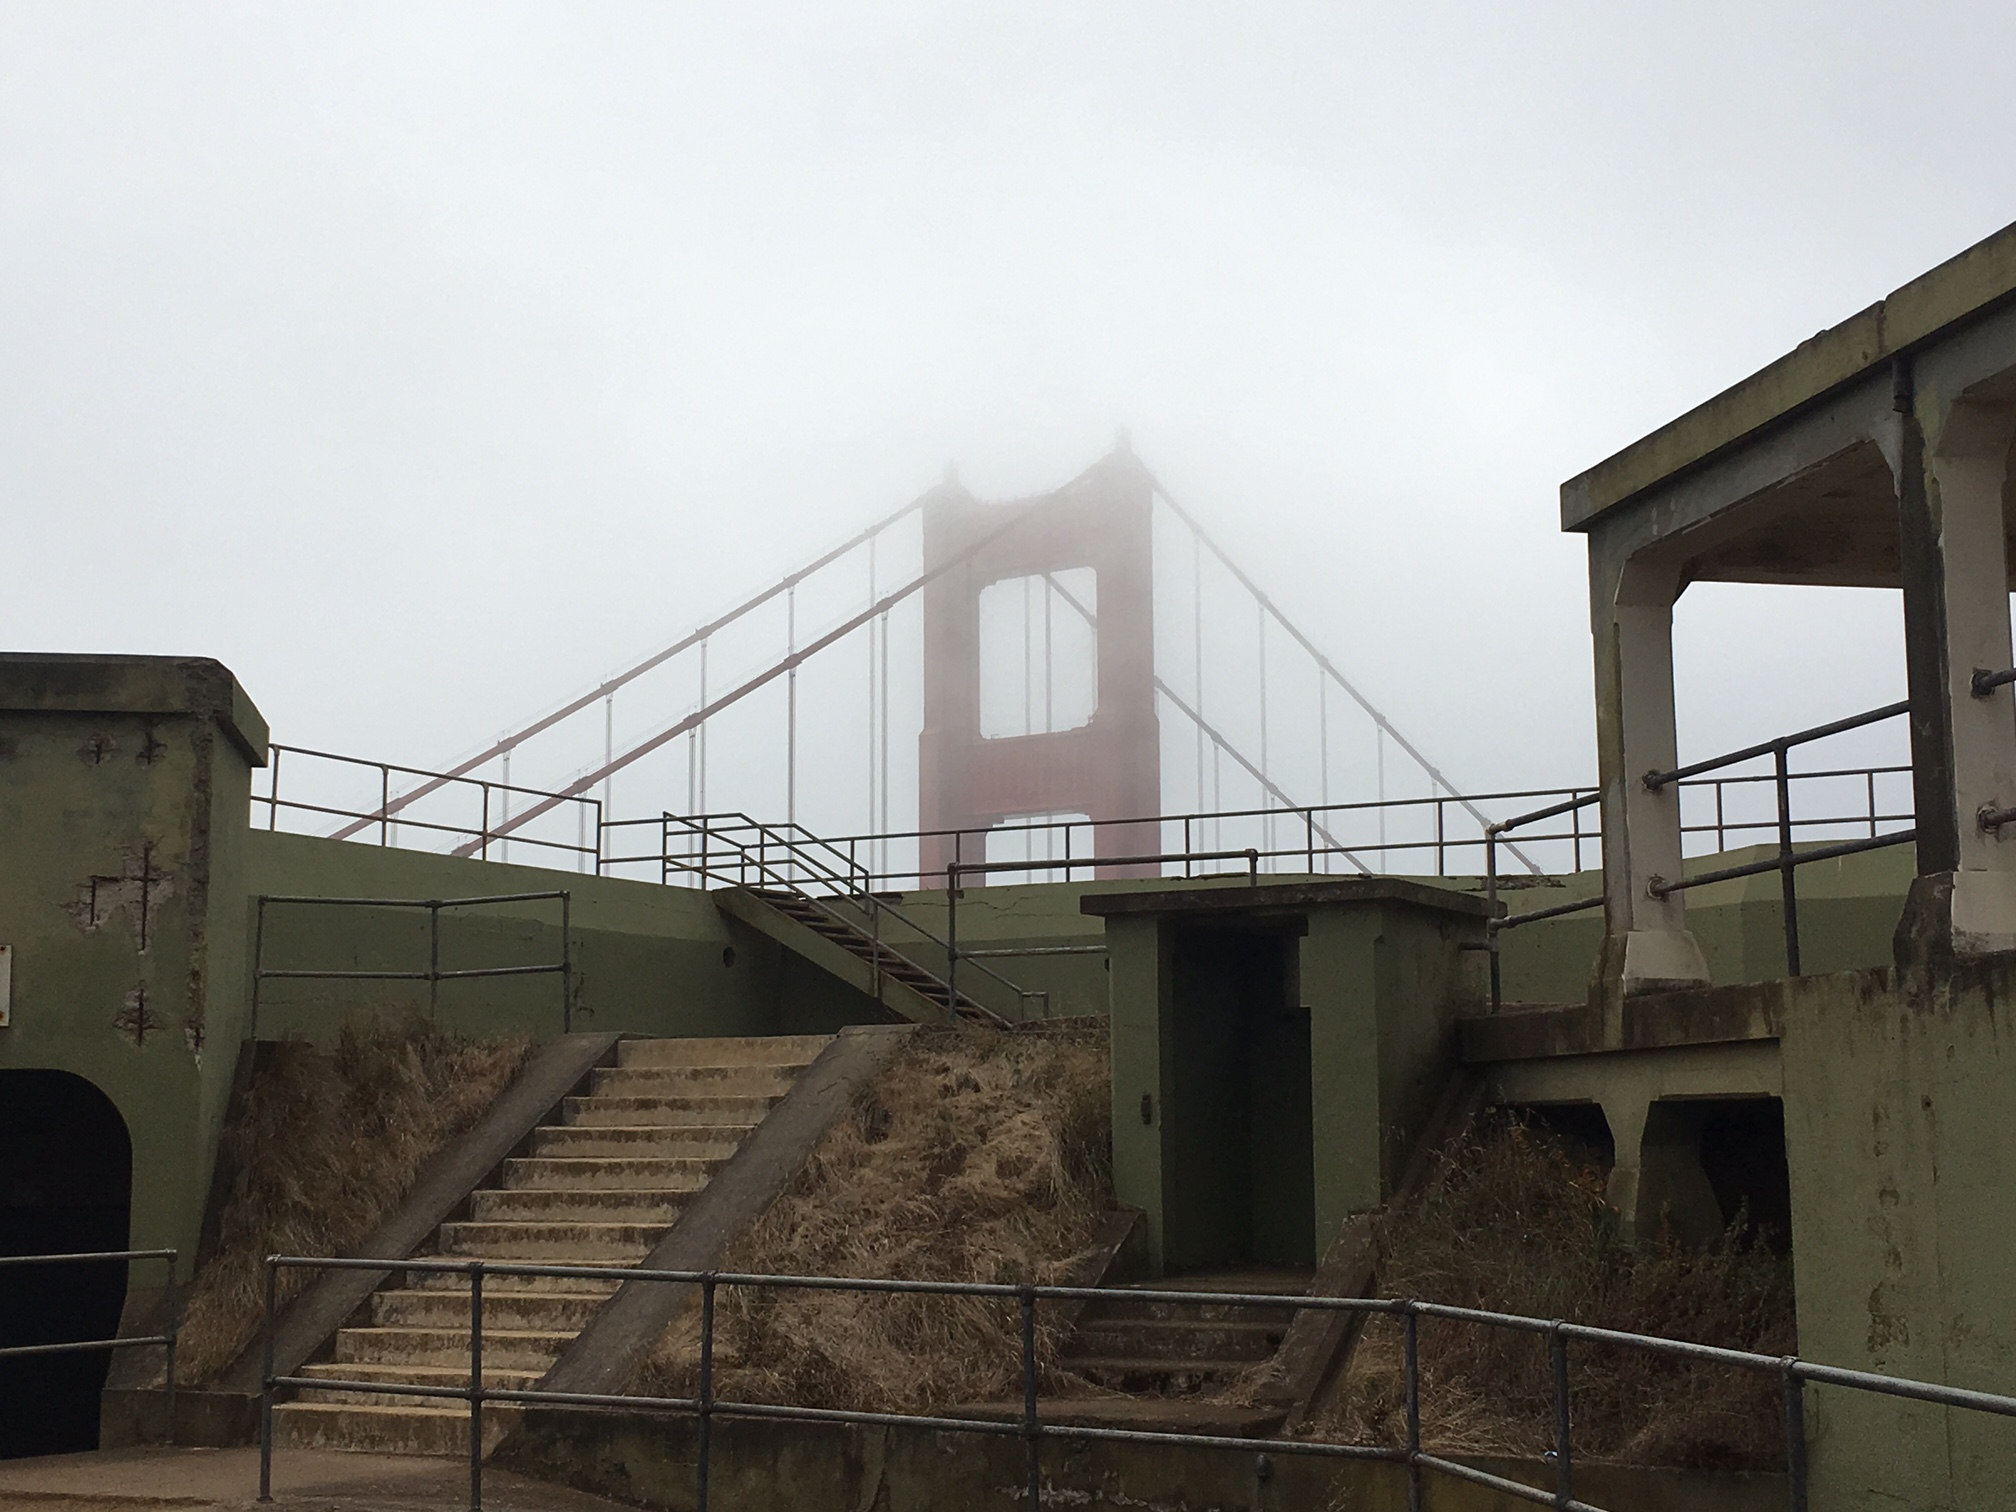 The view of the Golden Gate bridge from inside Battery Spencer. California State Military Museum (linked below) includes more information about weapons and building of Battery Spencer and profiles of few of the people who served there.